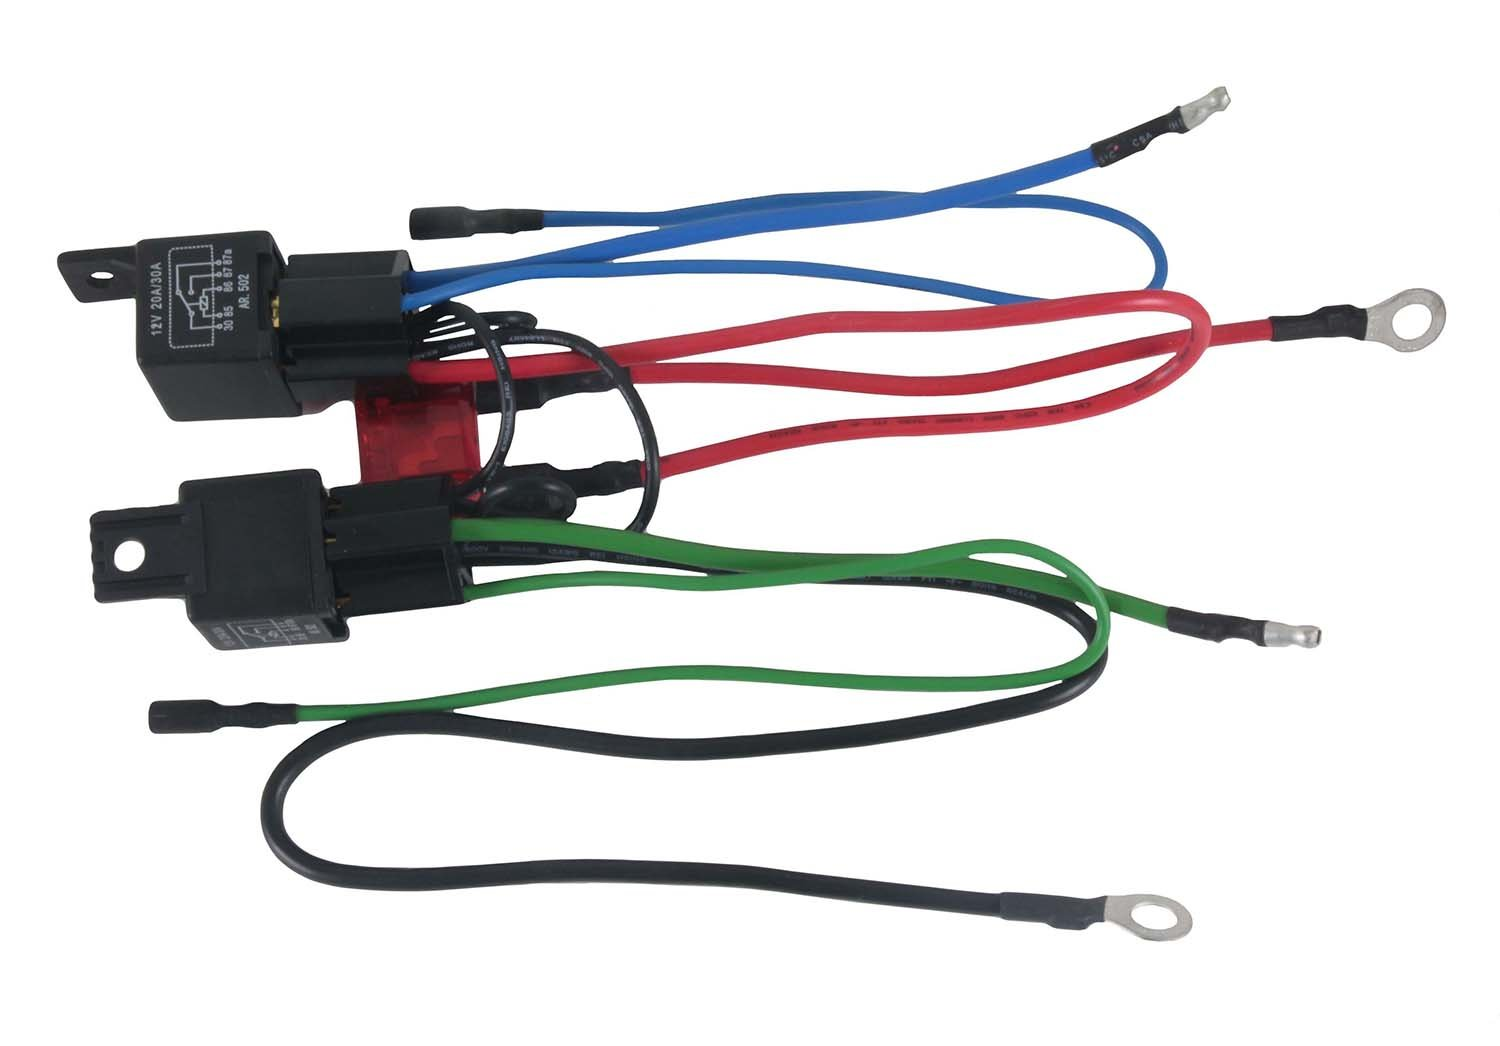 Amazon.com: NEW 3 WIRE - 2 WIRE CONVERSION HARNESS MERCURY MARINE  28-9807-100 PT475N 99186T: Automotive